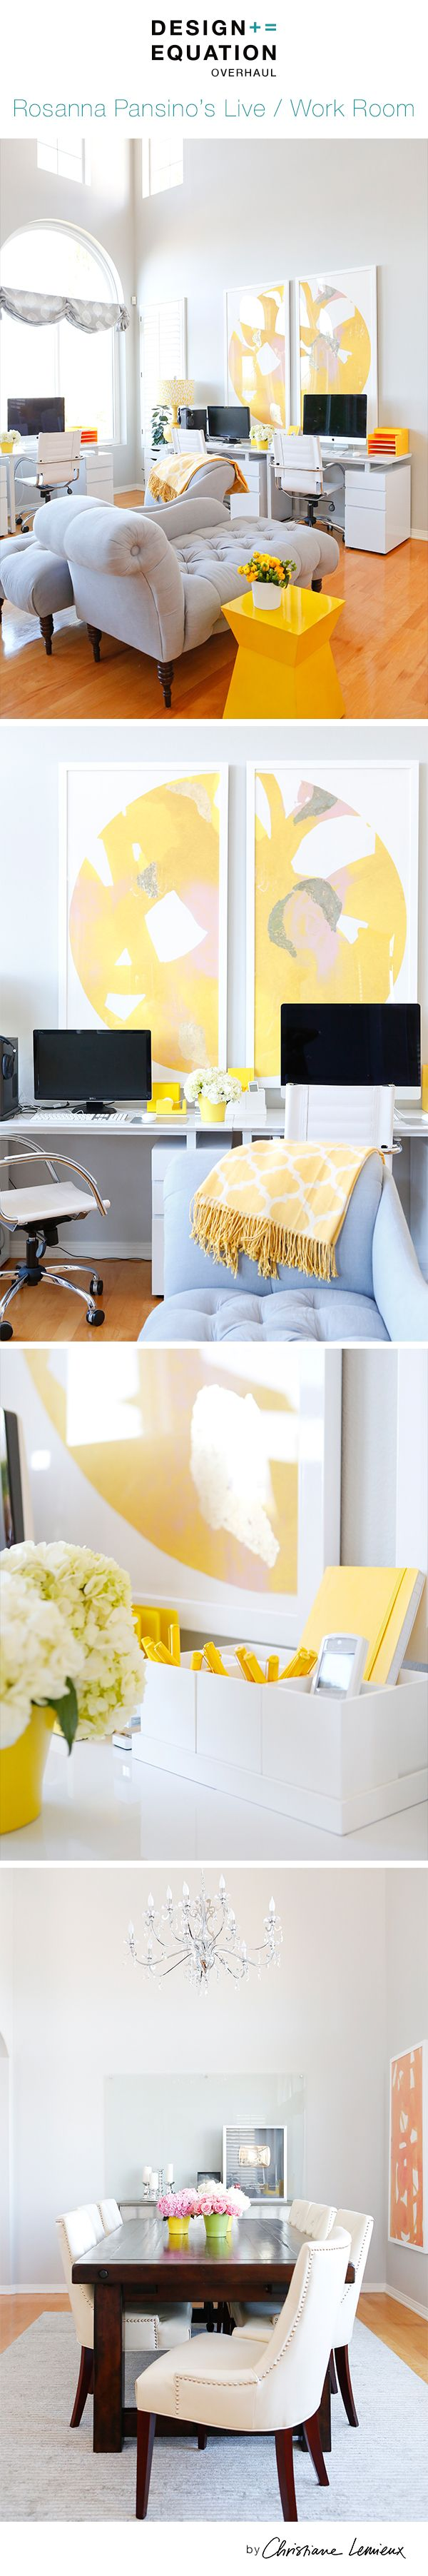 25 best Rosanna Pansino\'s Home/Office images on Pinterest   Cubicles ...